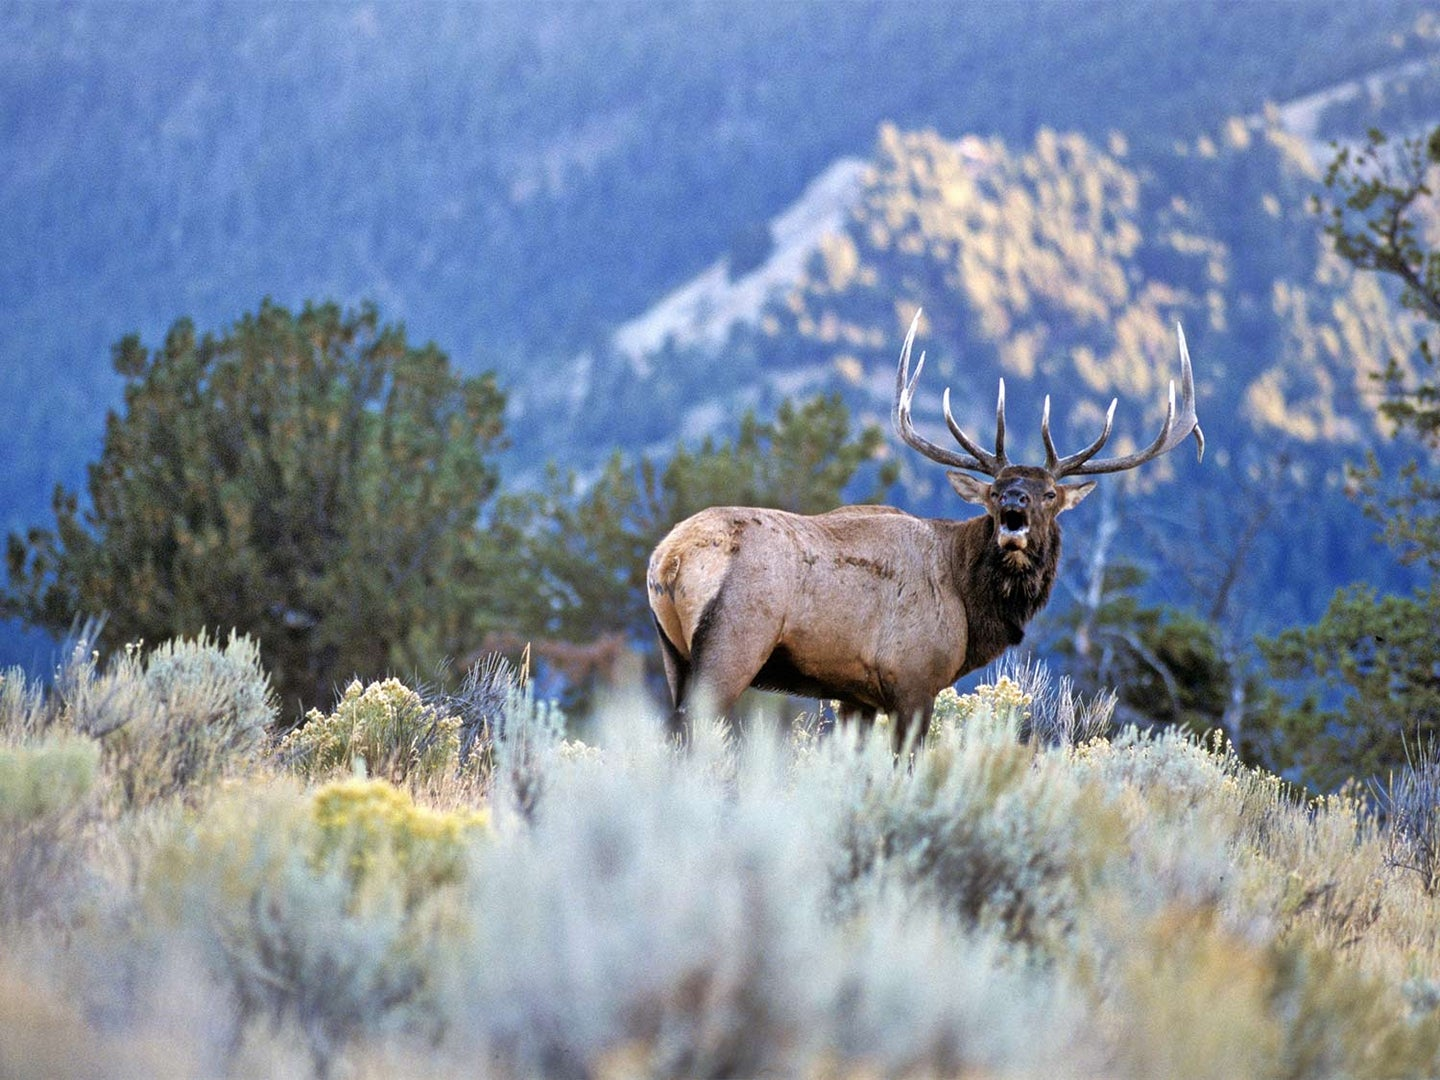 A large elk stands in a large open field with a mountain range in the distance.